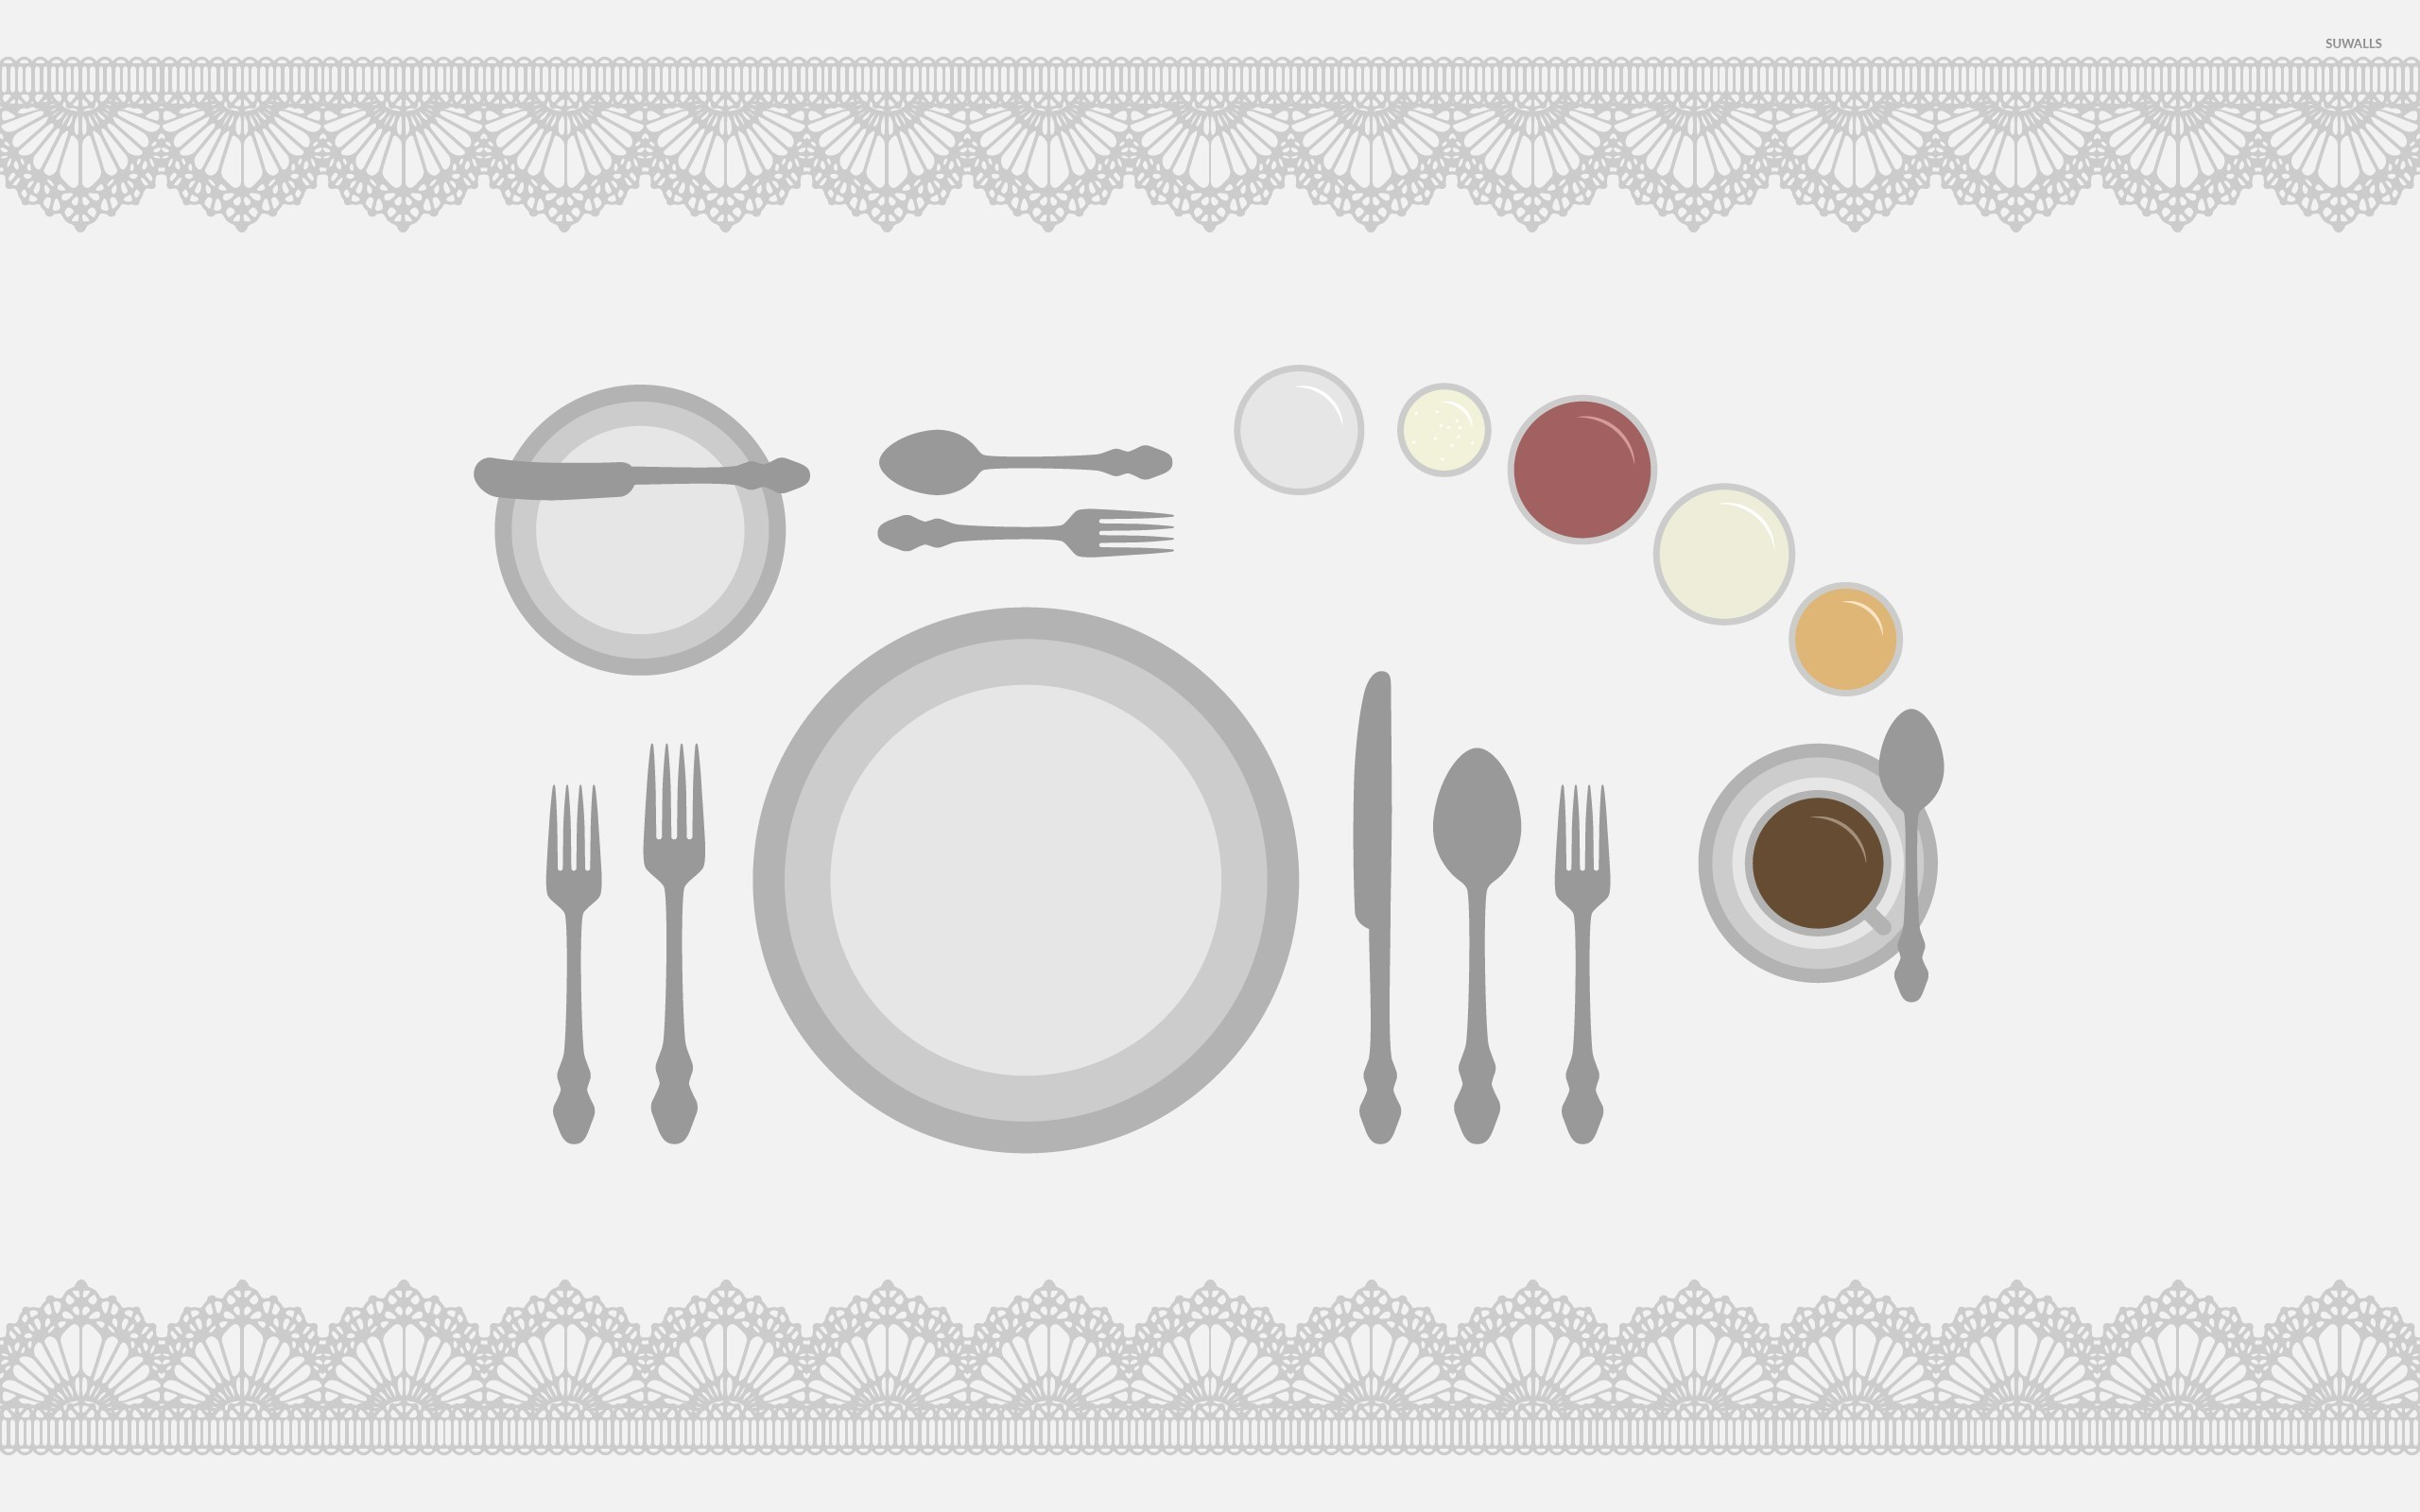 Dinner table background - Dining Table Wallpaper